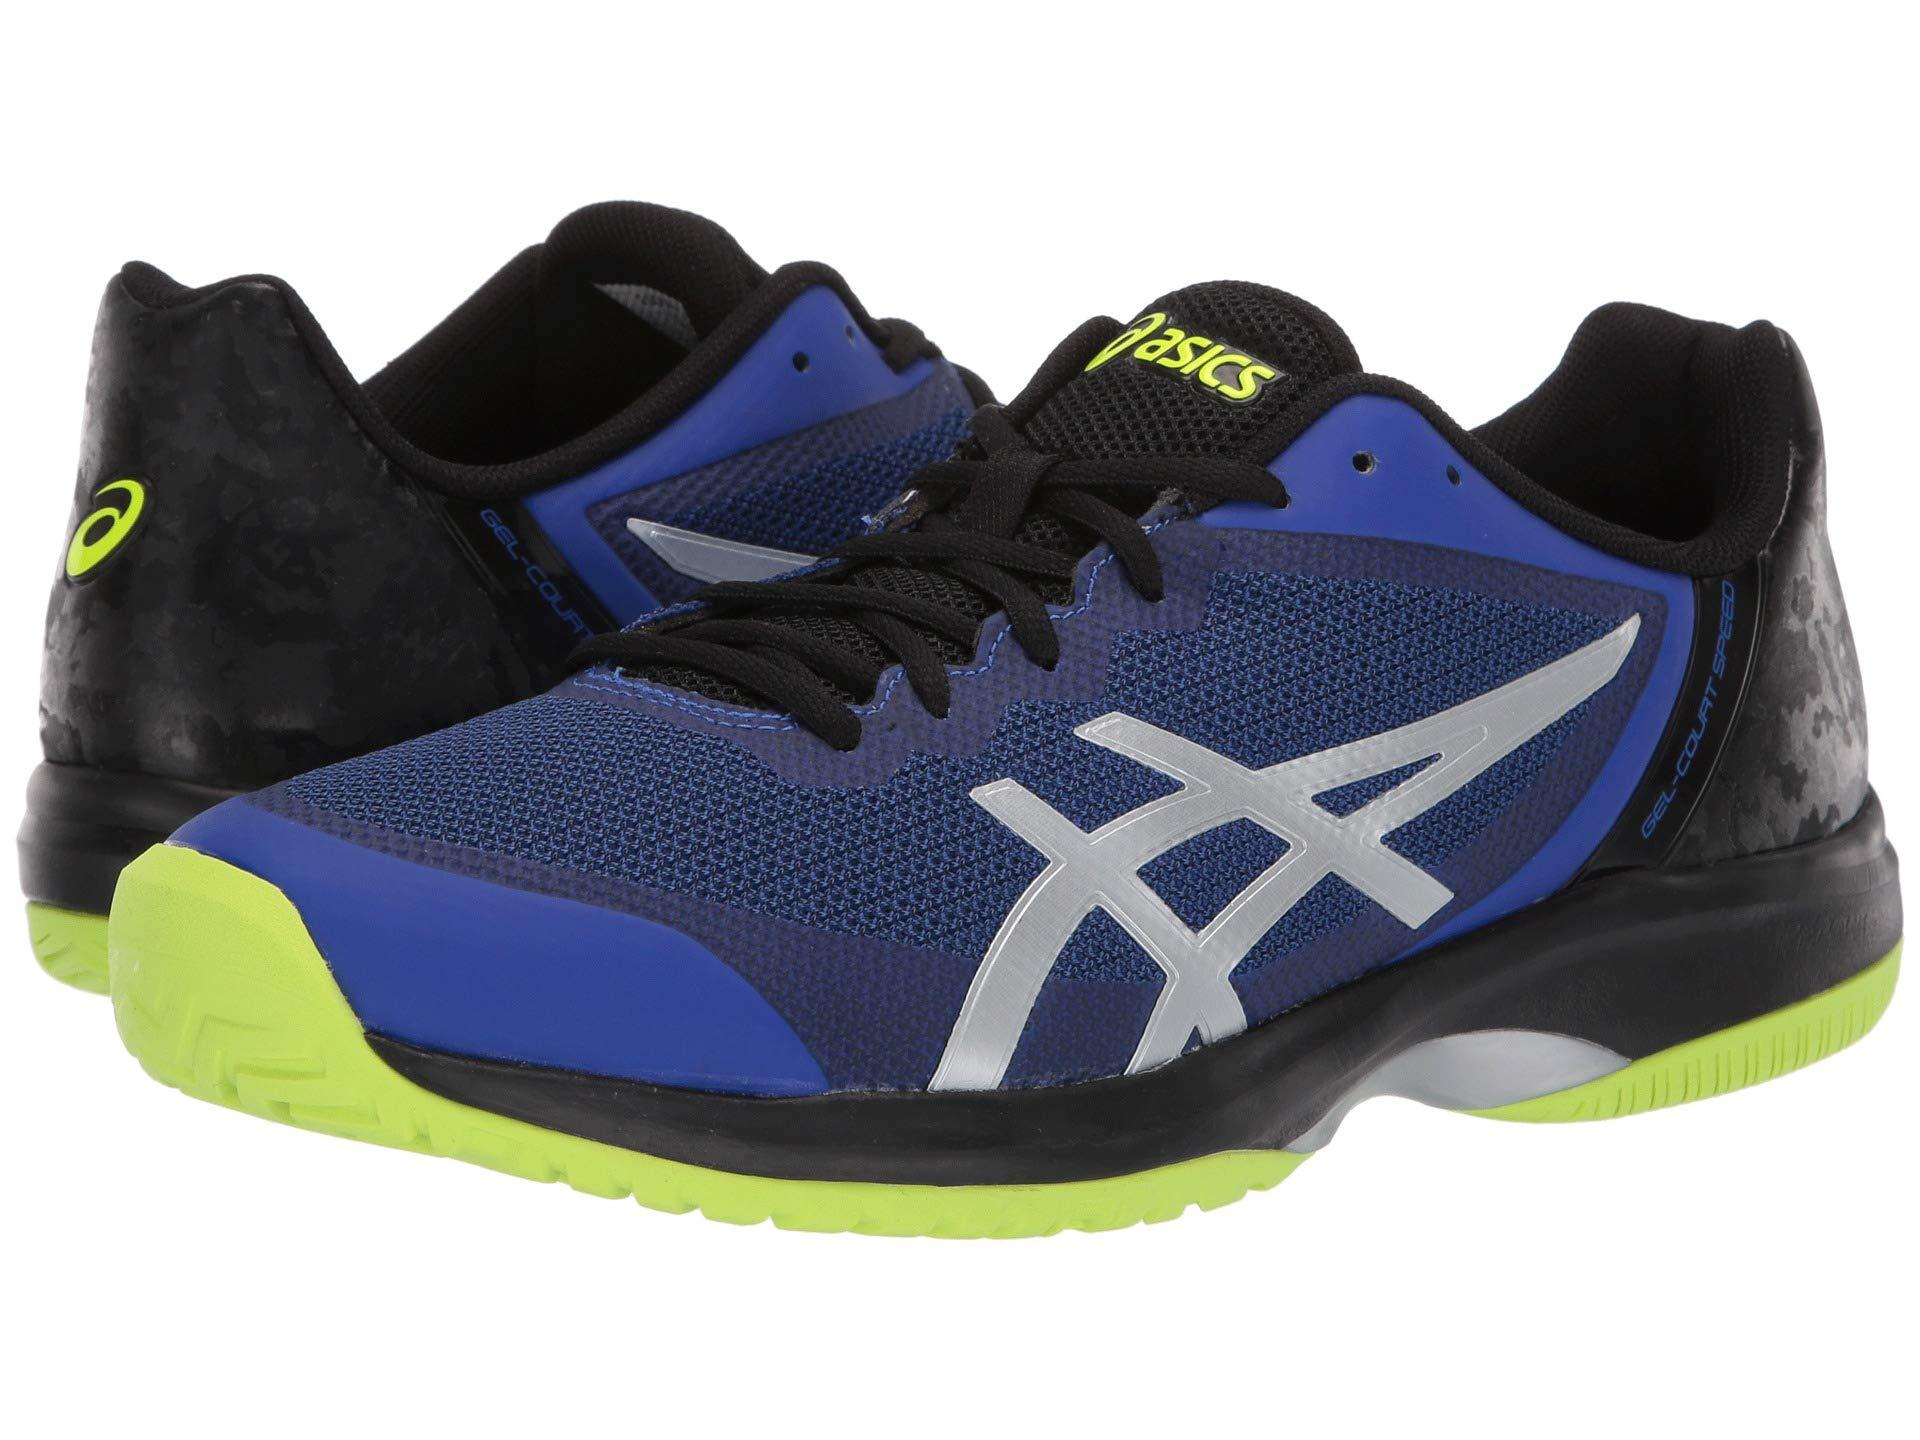 f9286f1ae6d5a Asics. Gel-court Speed (illusion Blue silver) Men s Cross Training Shoes